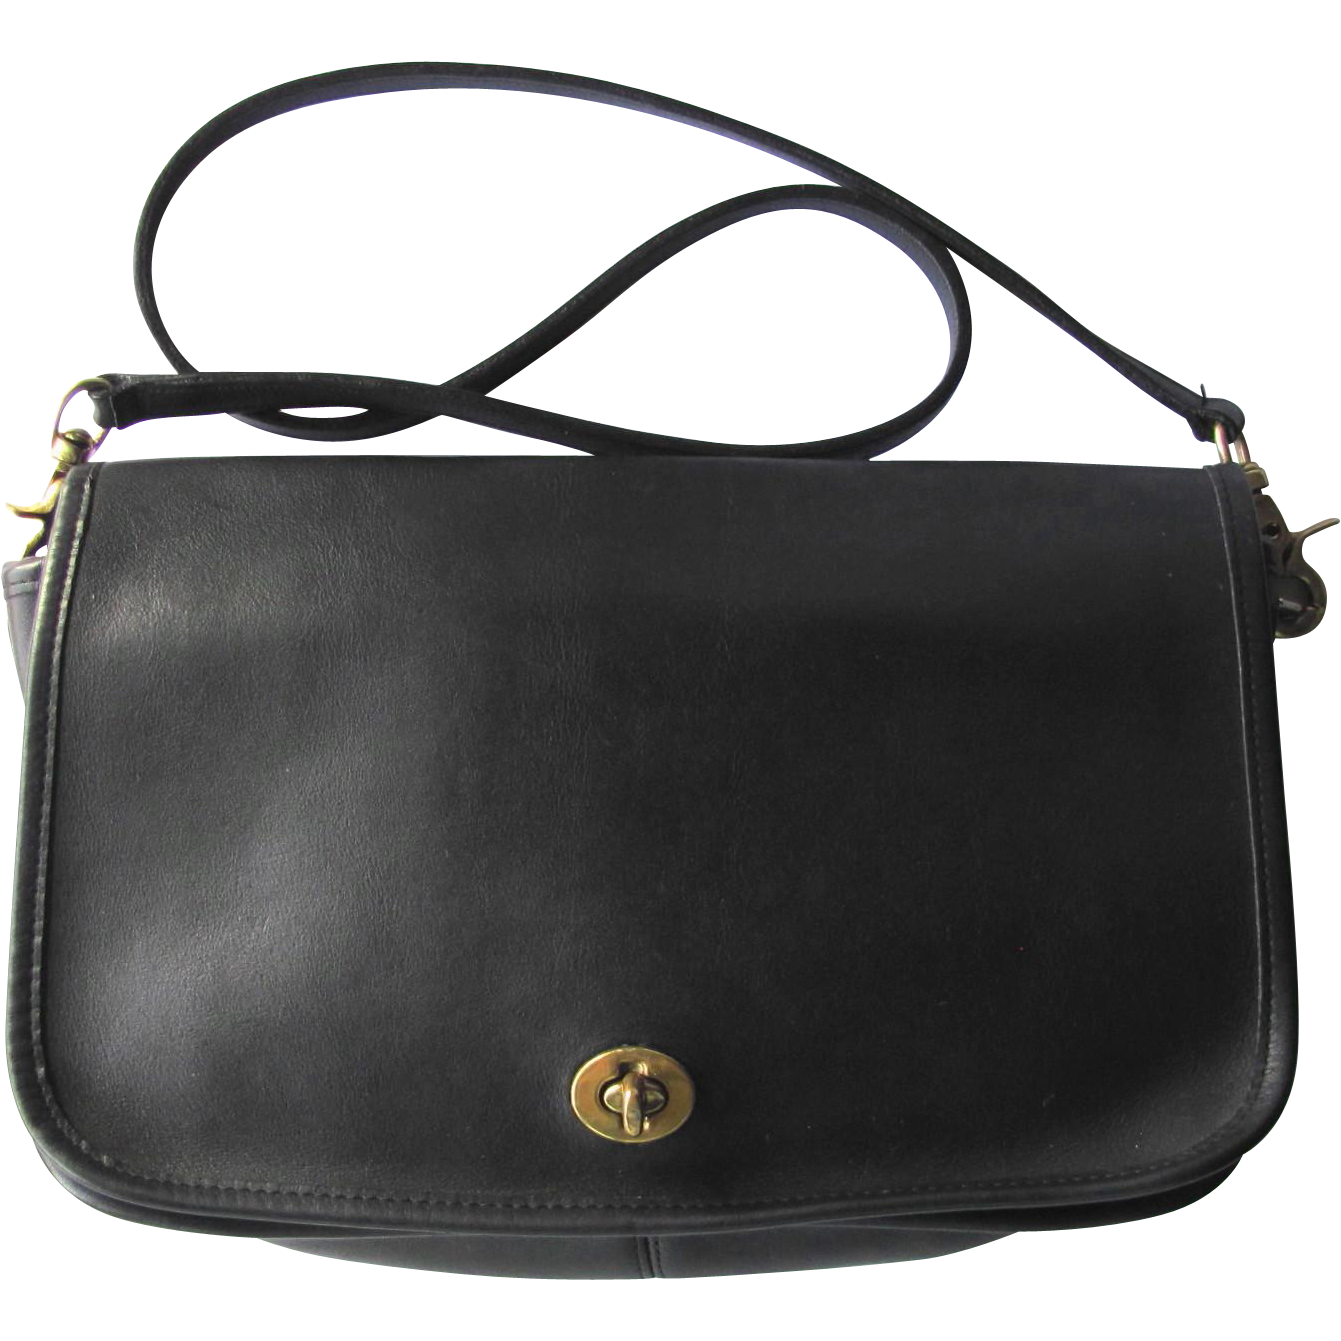 Vintage Coach Black Leather Saddle Bag – New York City Bag from Original Coach Factory